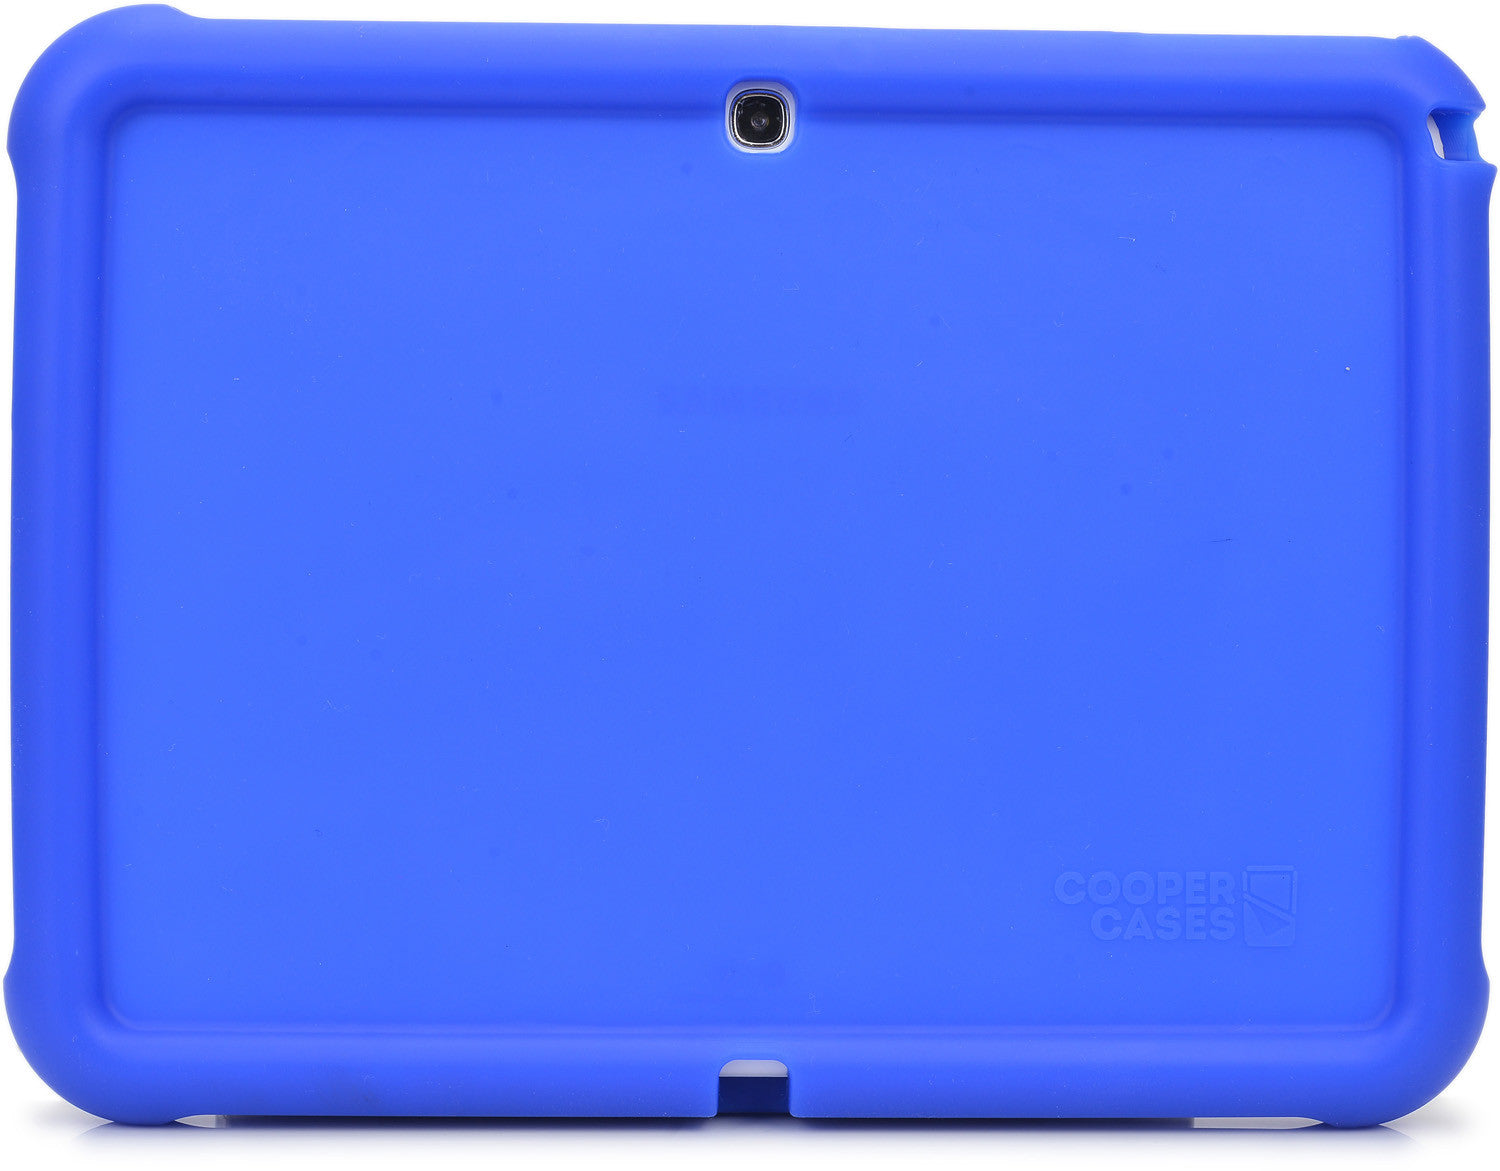 buy popular e2922 a52b1 Cooper NoteKee F8S Clamshell Backlit Keyboard Case for Apple iPad